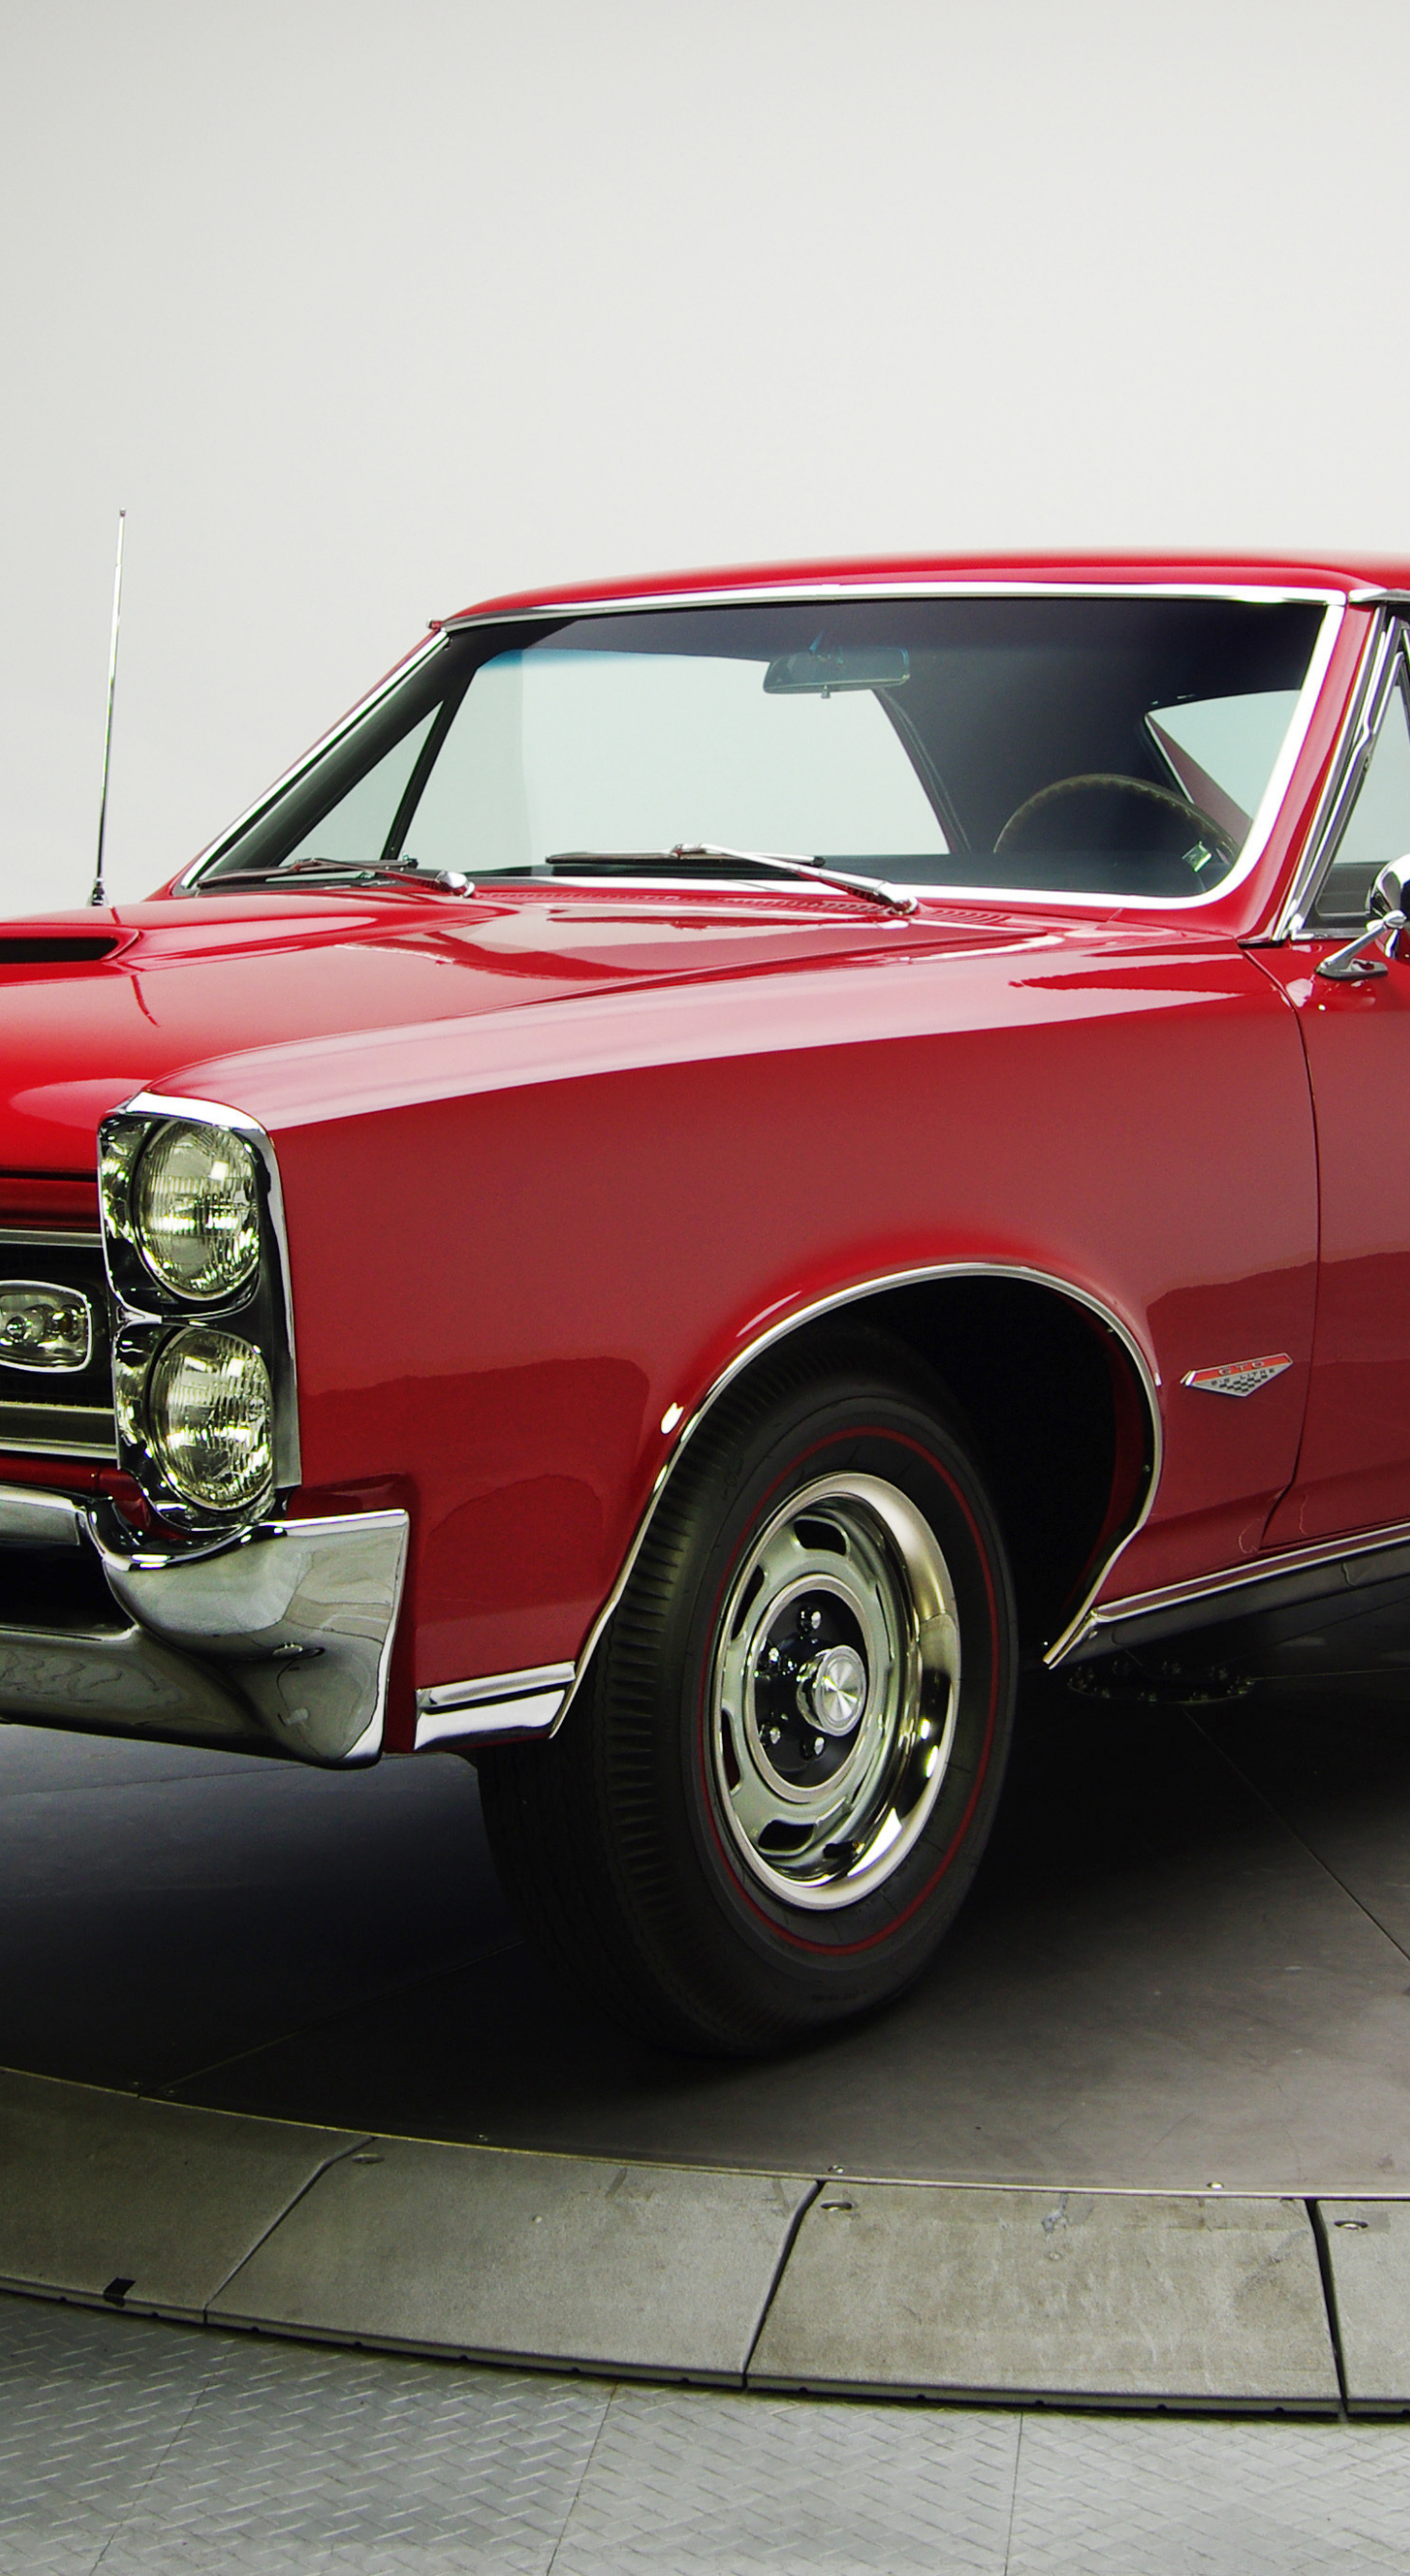 Download 1440x2630 Wallpaper Red Pontiac Gto Muscle